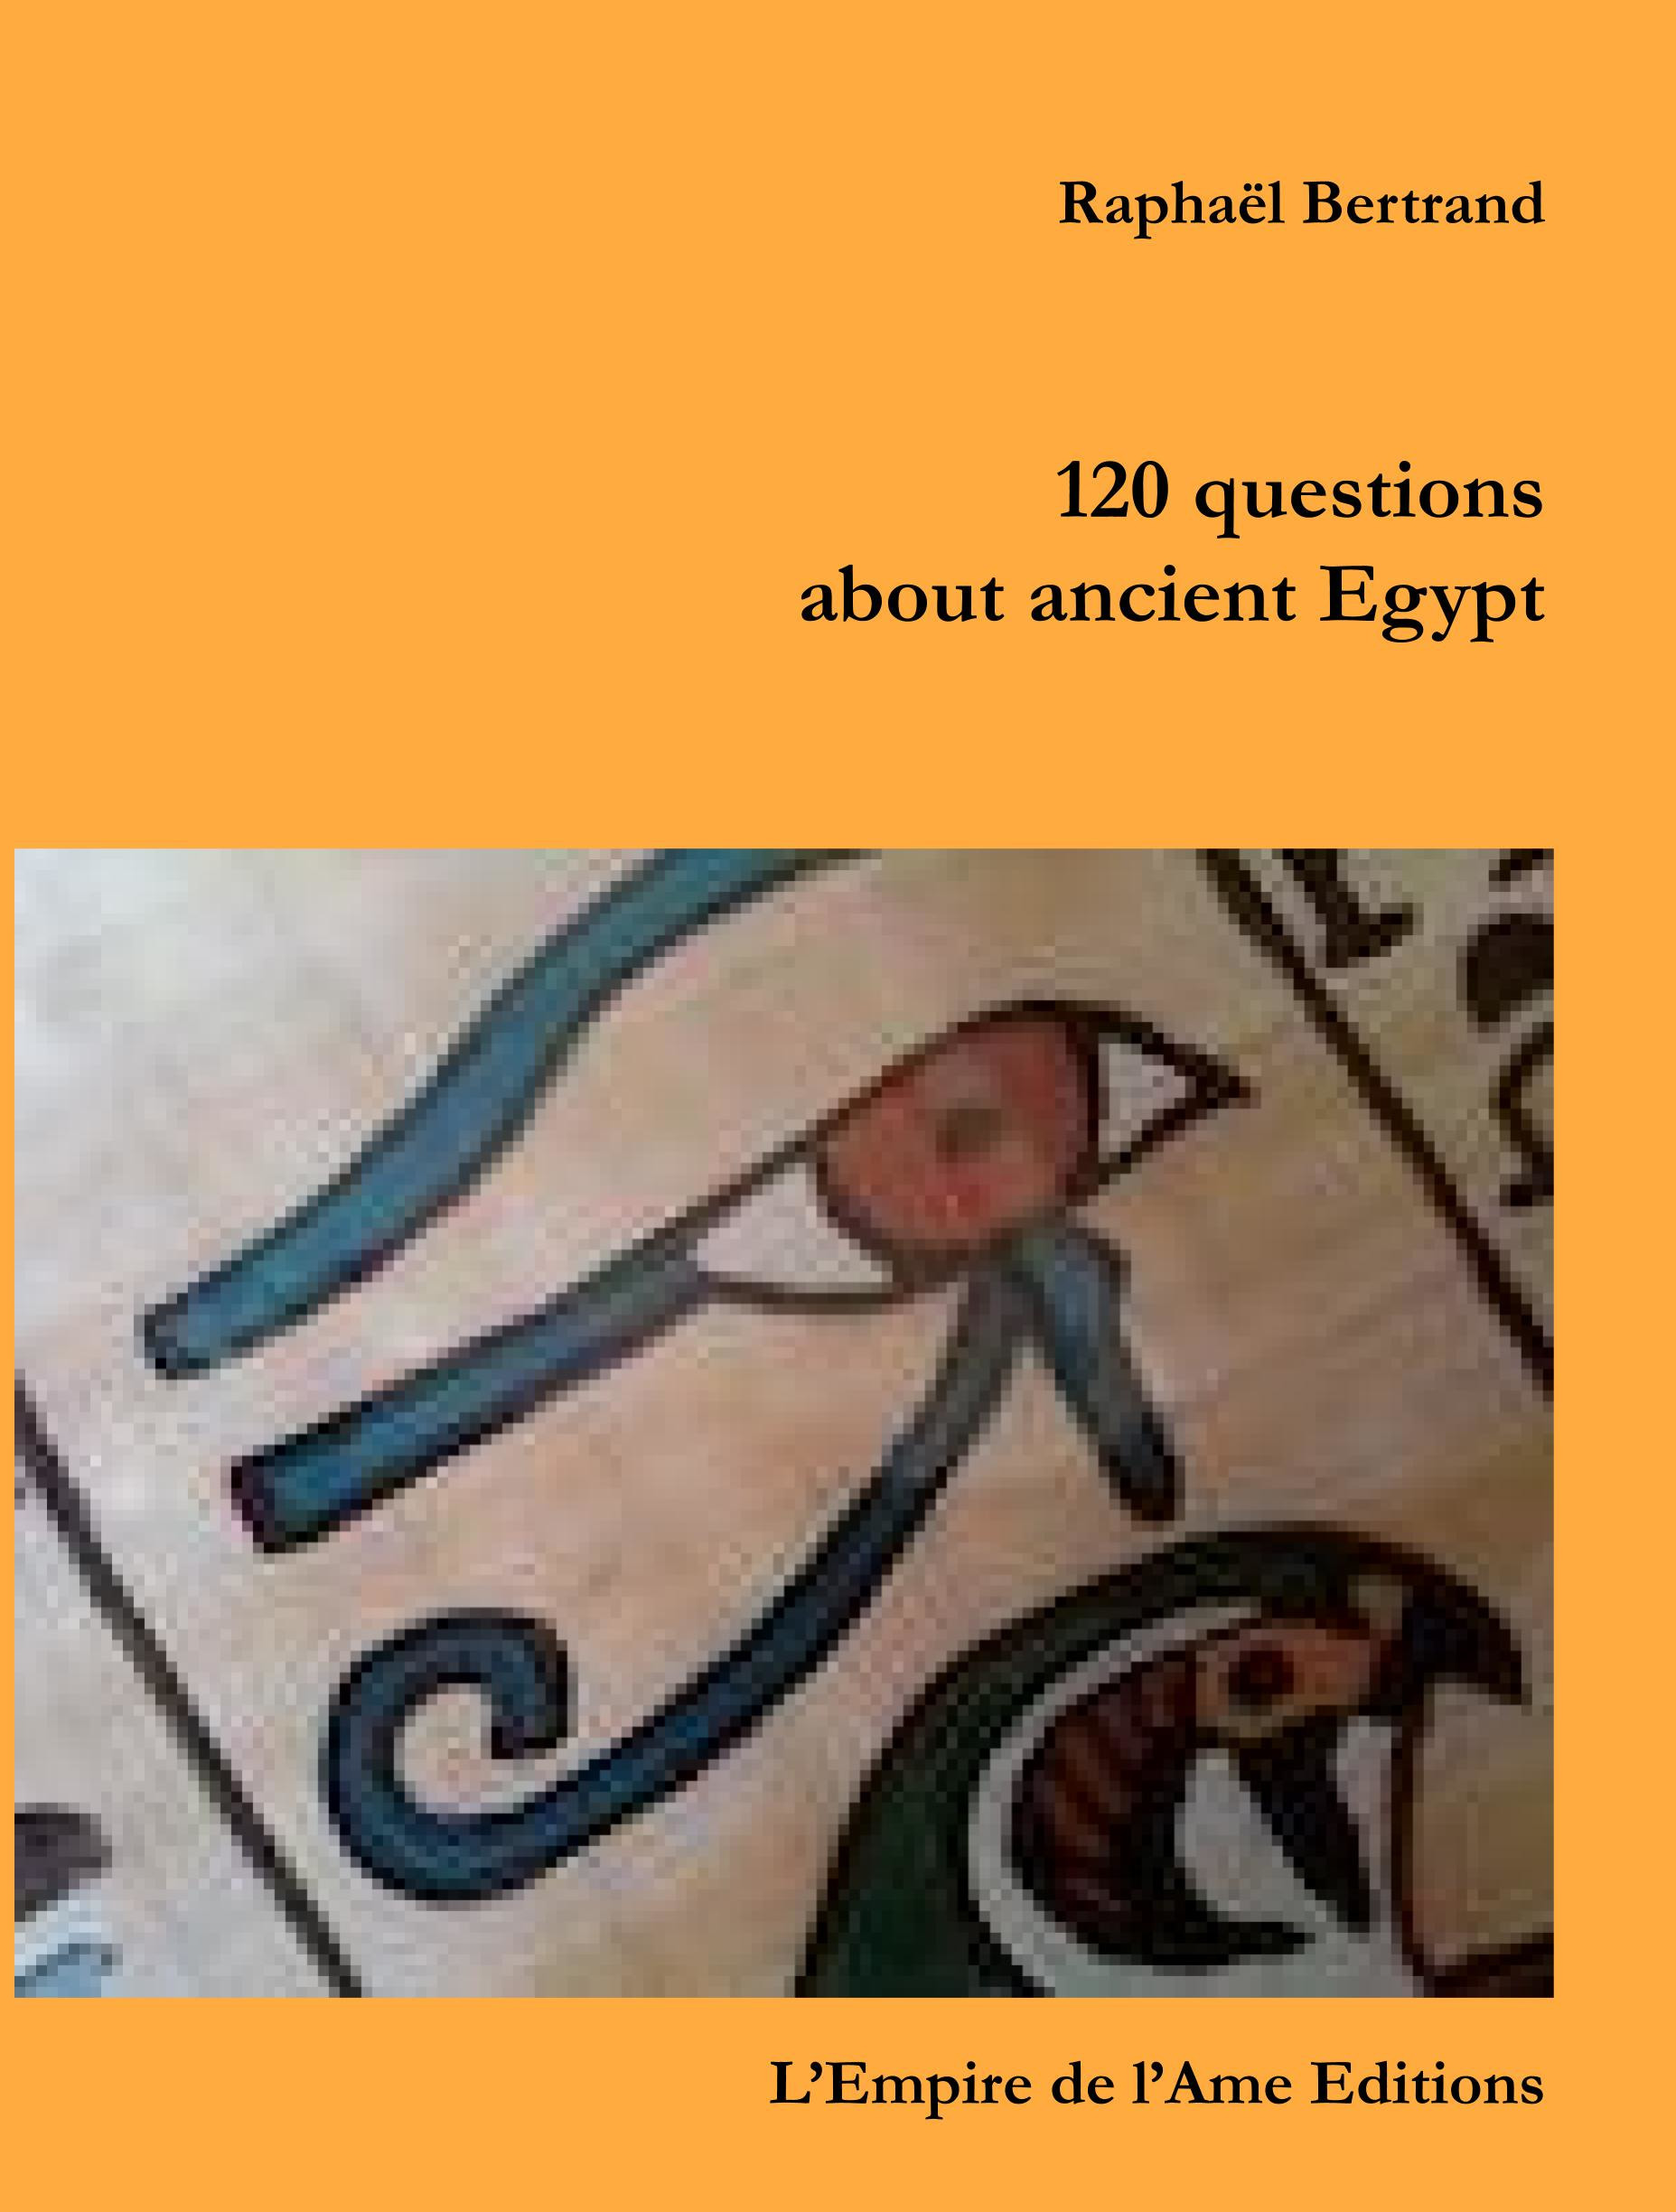 120 questions about ancient Egypt